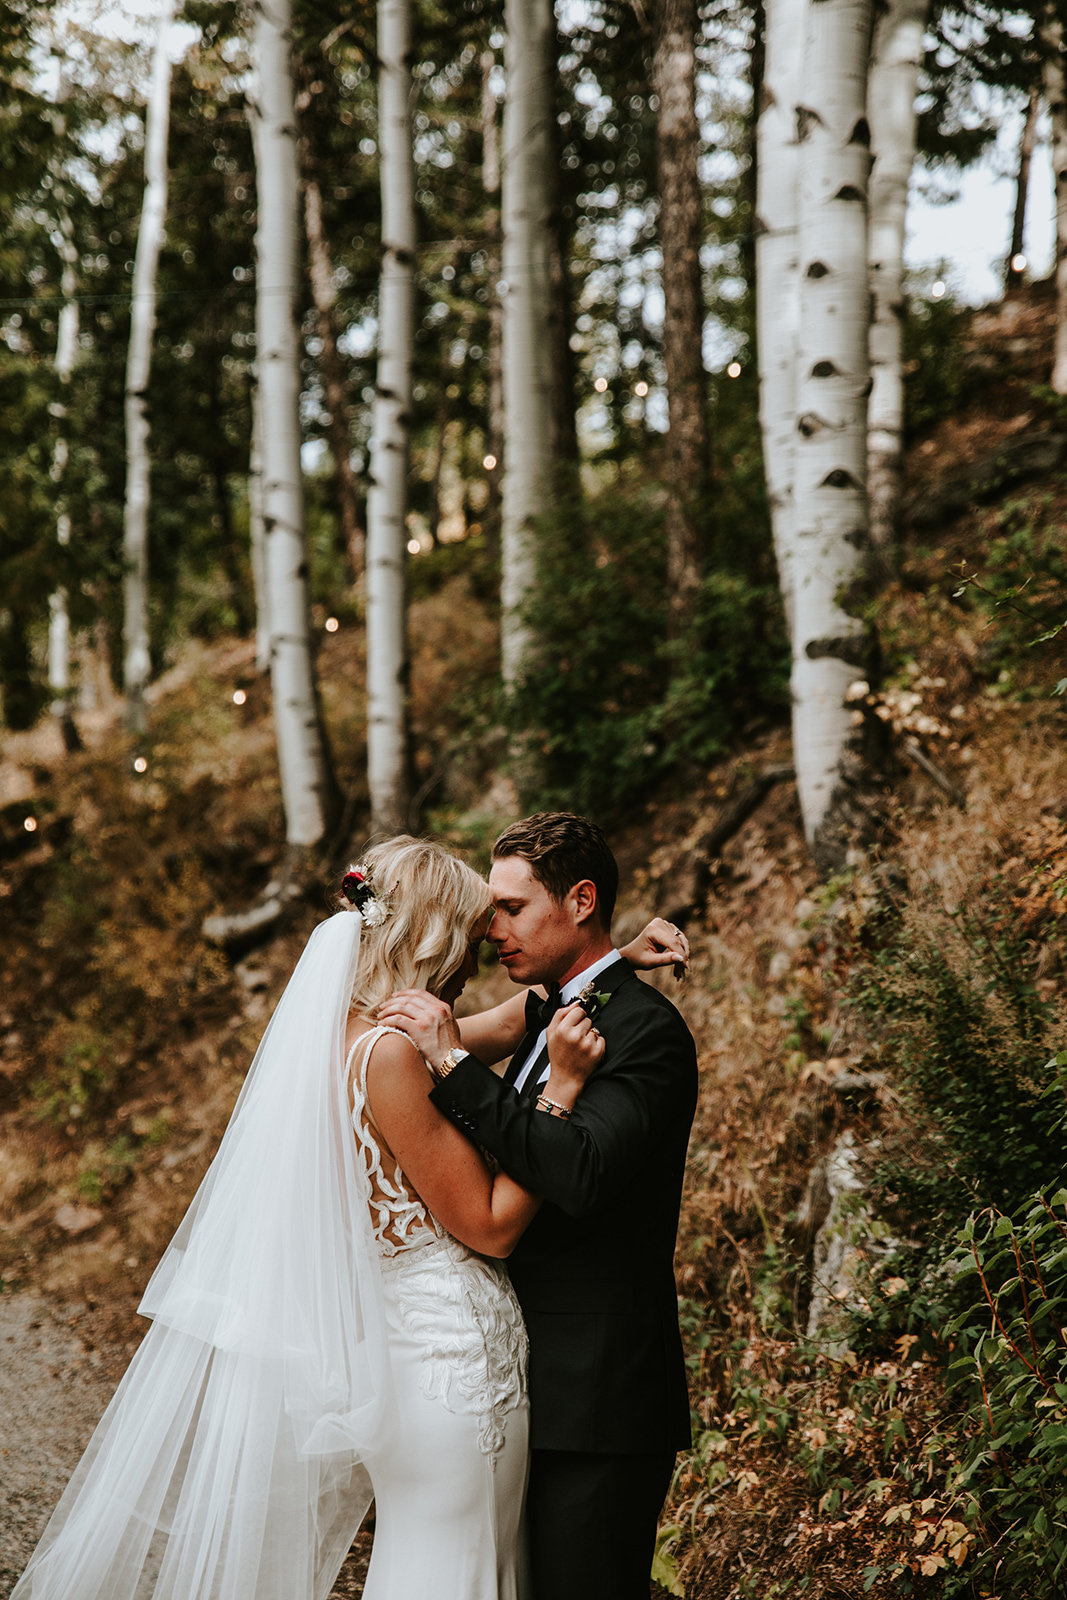 pre-wedding cuddles at Blackstone Rivers Ranch in Idaho Springs, CO